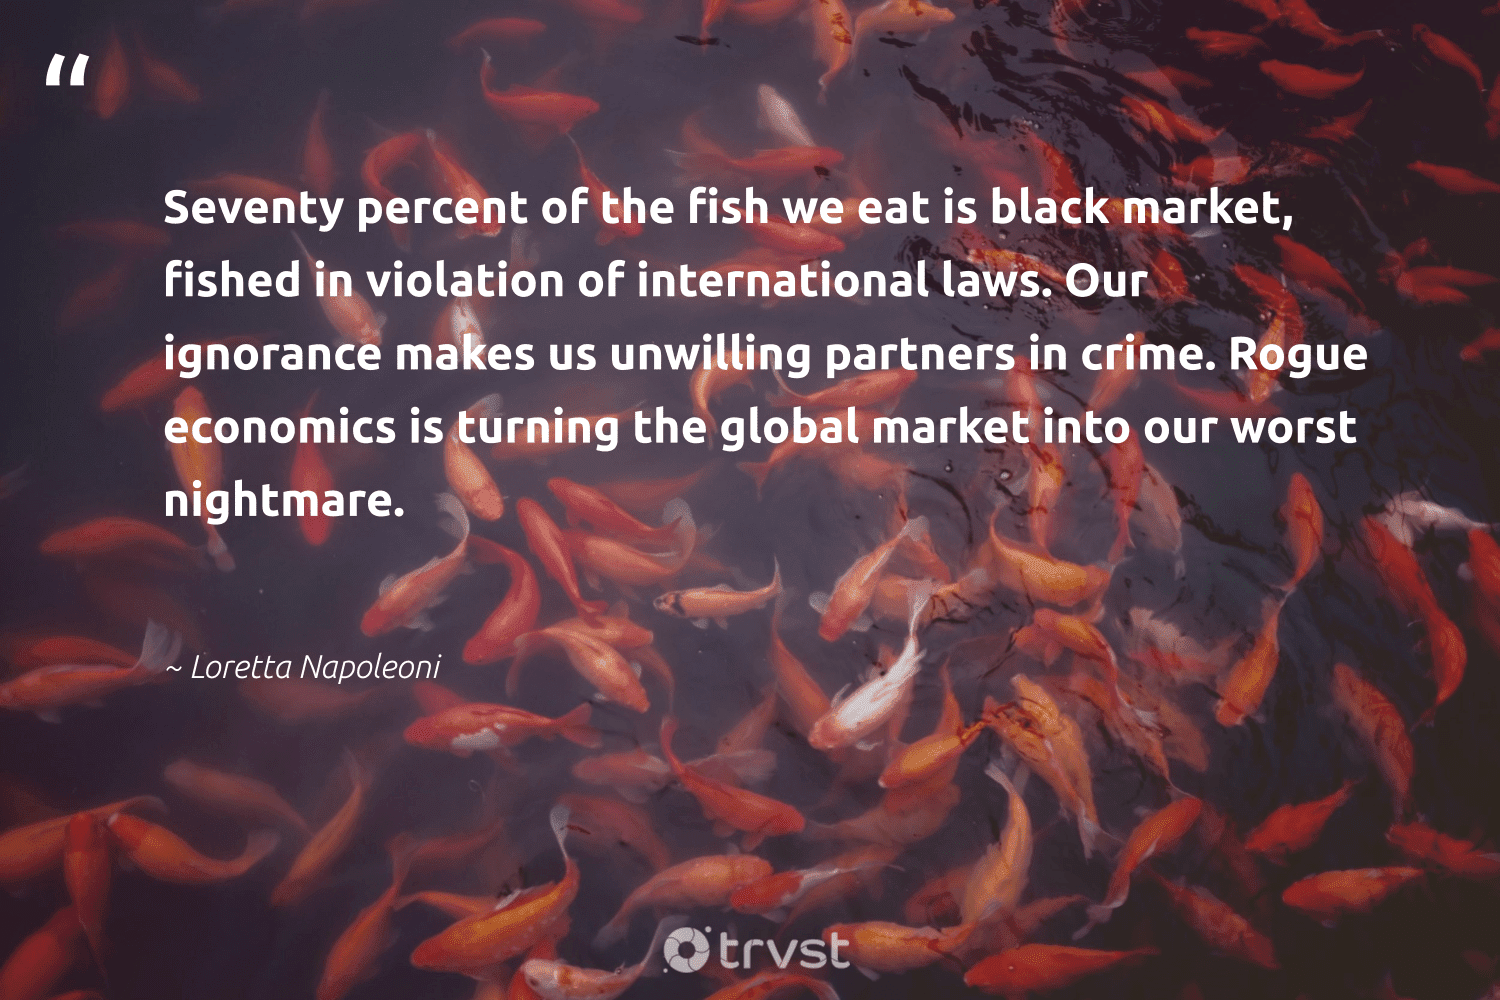 """""""Seventy percent of the fish we eat is black market, fished in violation of international laws. Our ignorance makes us unwilling partners in crime. Rogue economics is turning the global market into our worst nightmare.""""  - Loretta Napoleoni #trvst #quotes #economics #fish #protecttheoceans #bethechange #oceanlove #gogreen #protectnature #thinkgreen #nature #impact"""